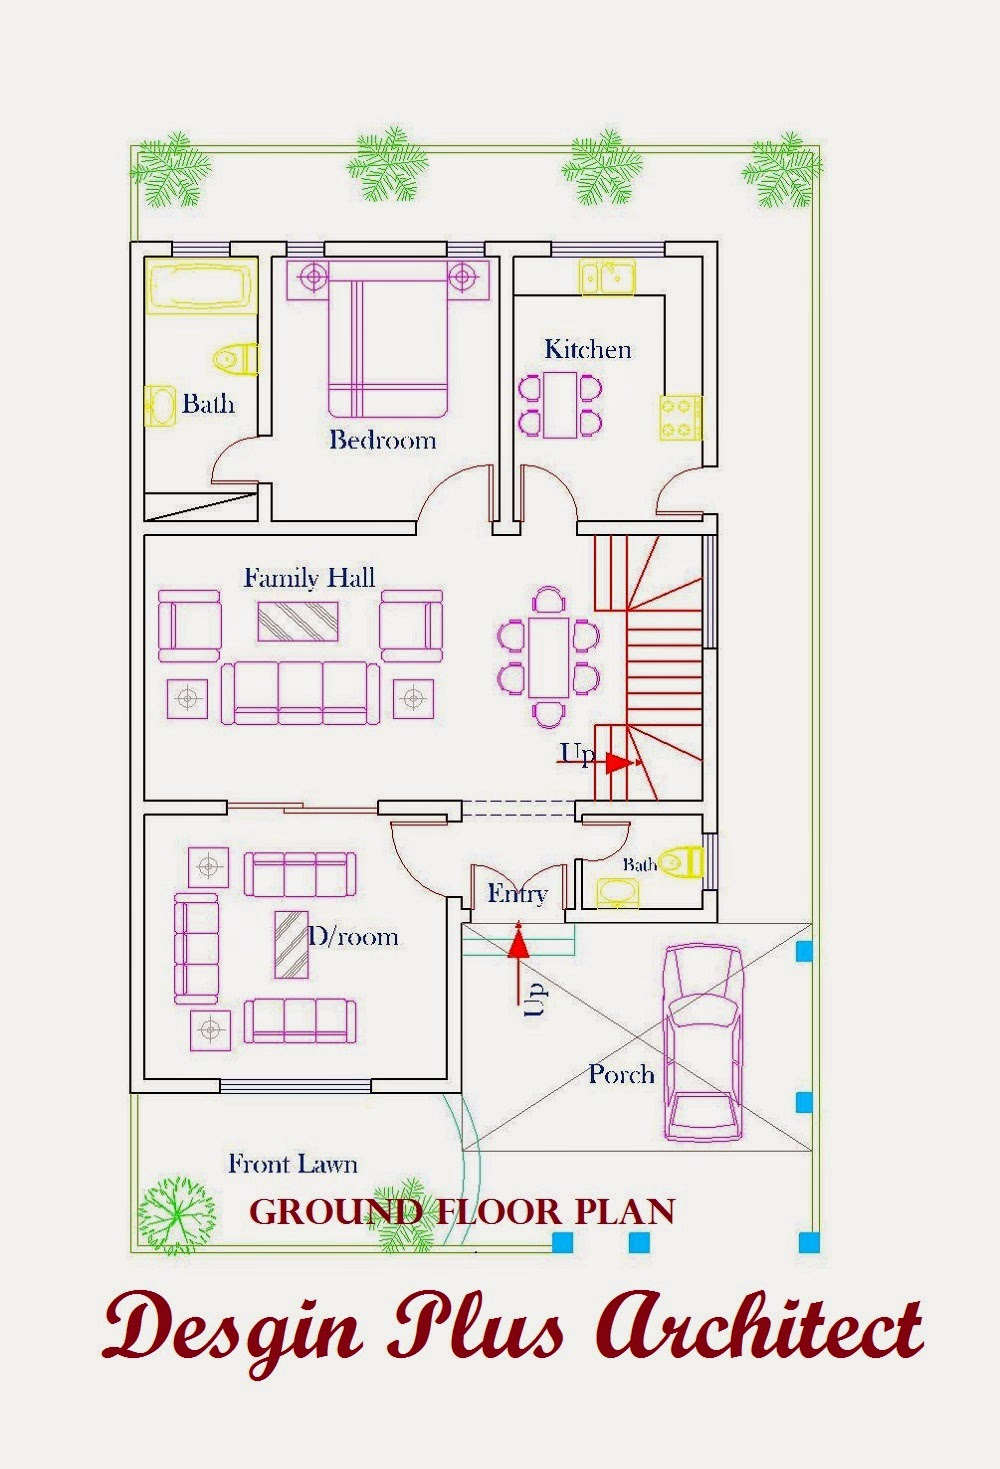 Home plans in pakistan home decor architect designer for Www home plans